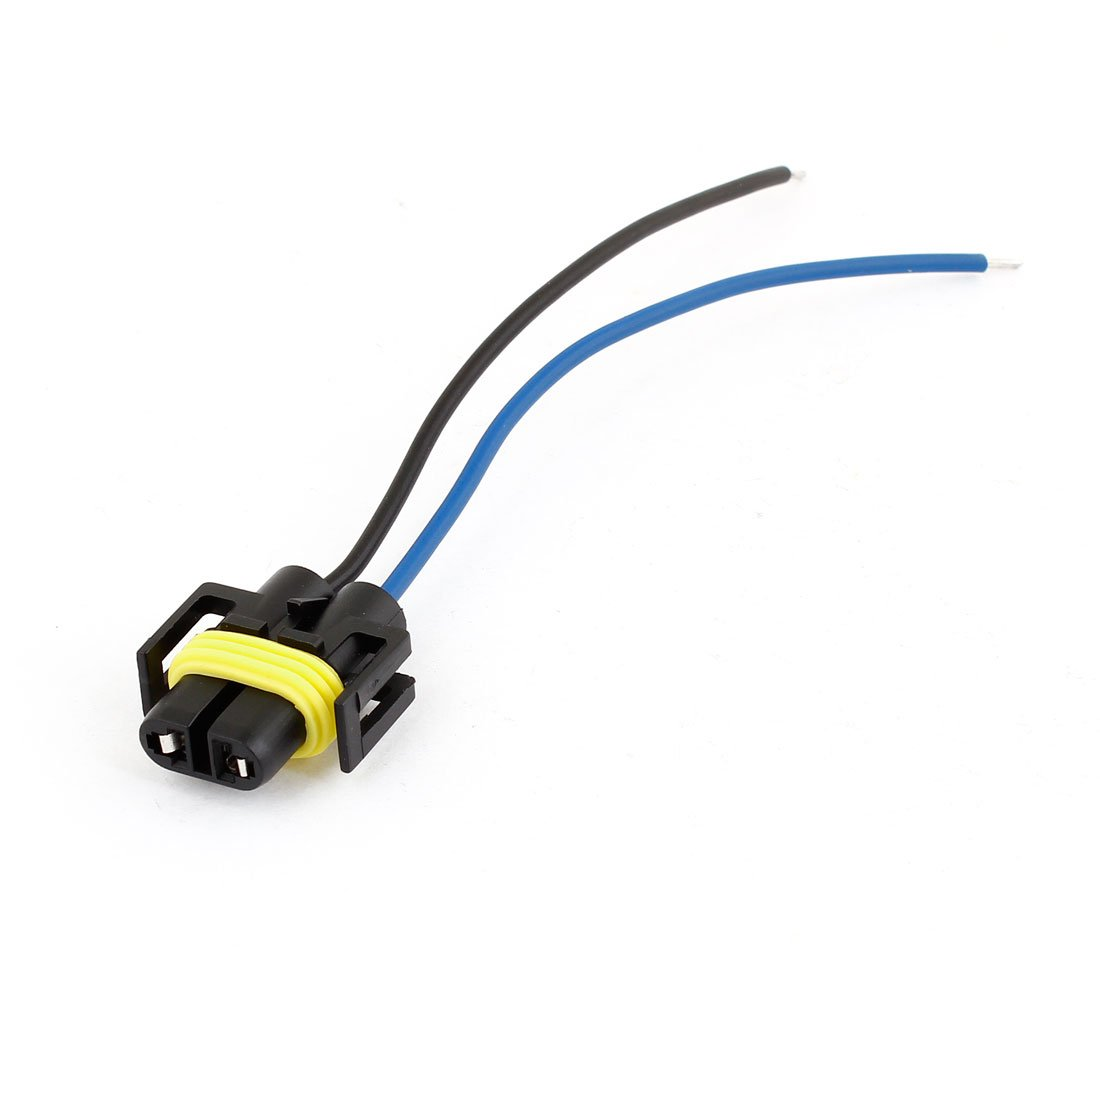 51BaCEv3NUL._SL1100_ amazon com uxcell auto car 2 wire headlight h11 socket harness  at webbmarketing.co